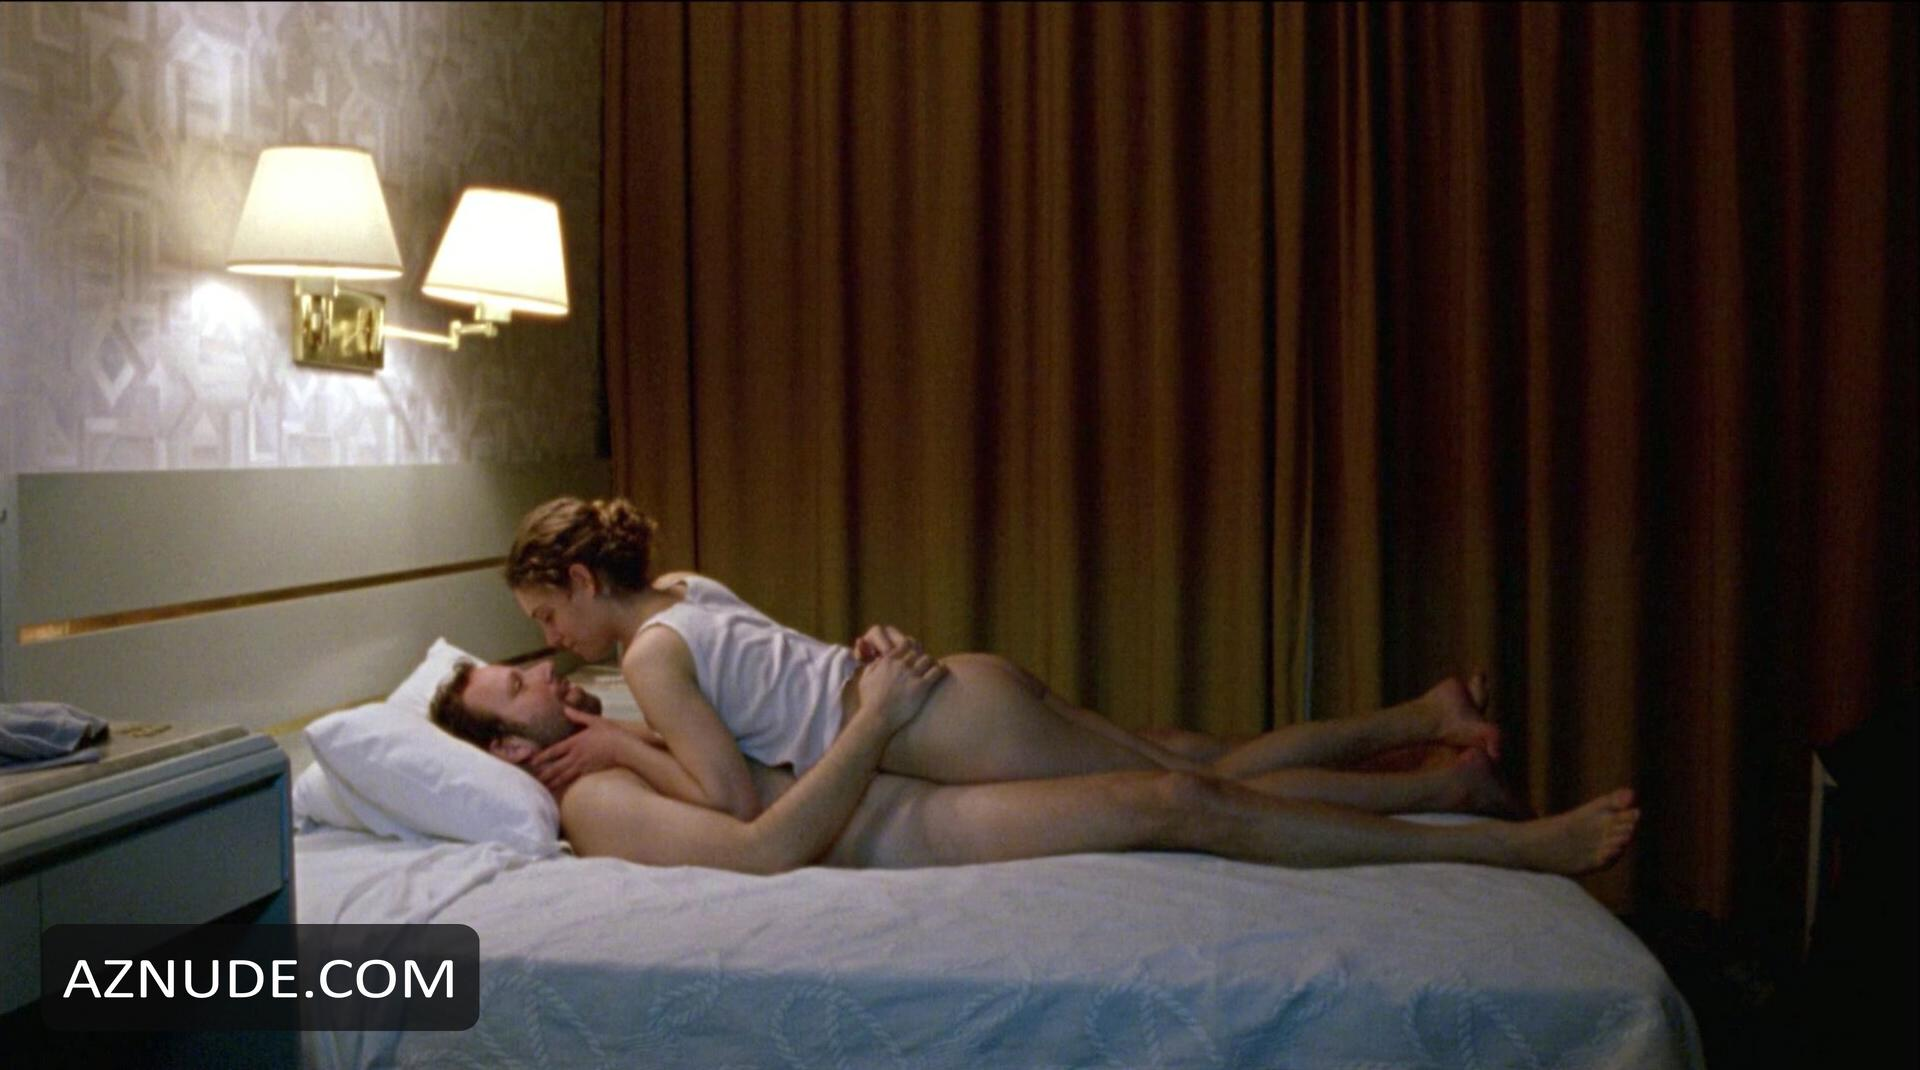 Ariane labed nude attenberg 2010 hd 6